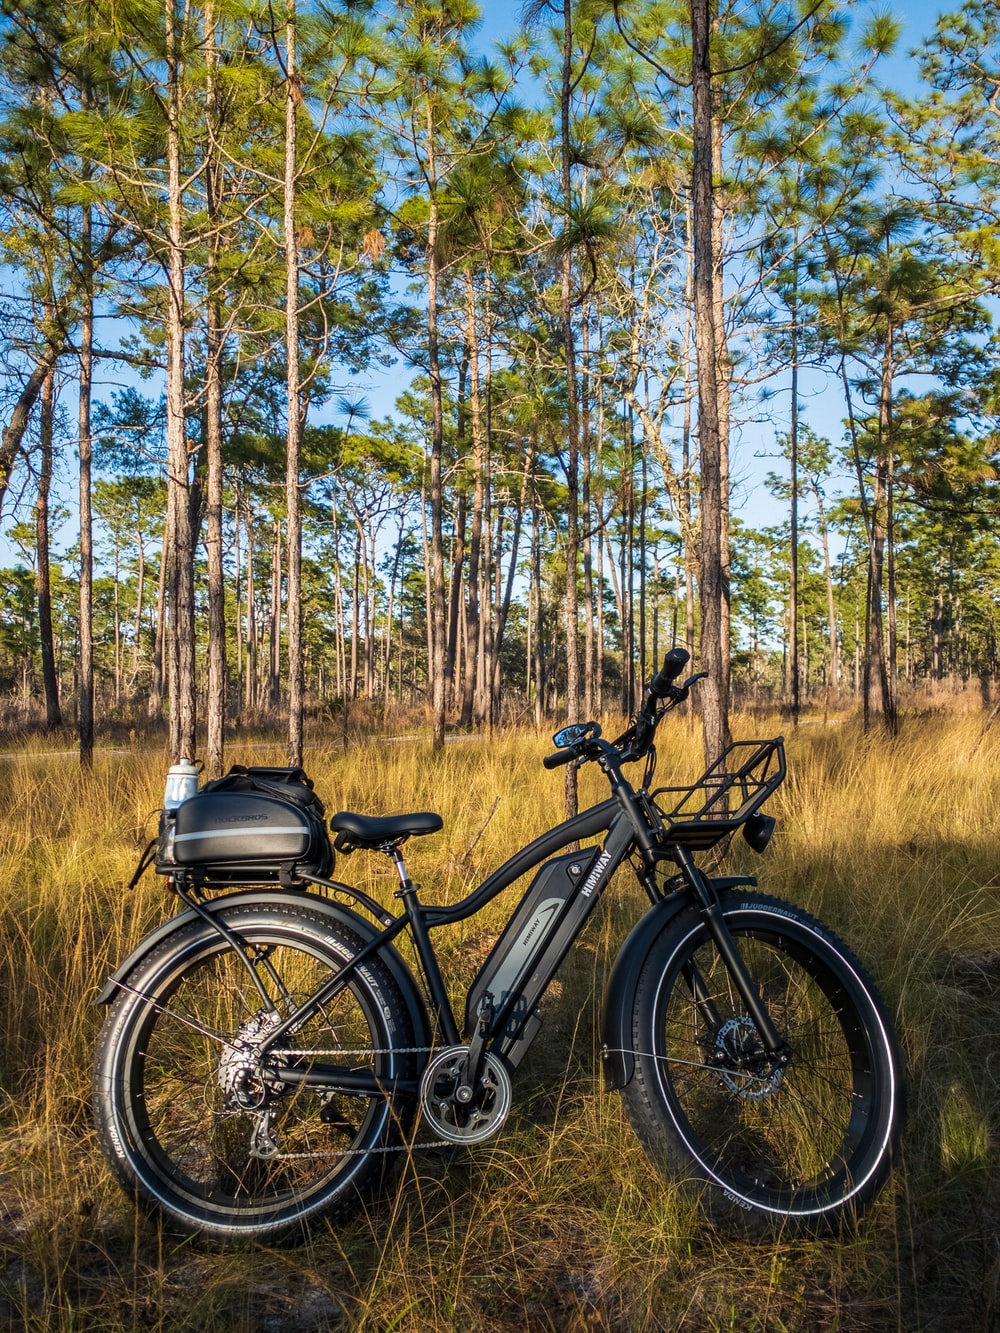 black and gray mountain bike on brown grass field during daytime